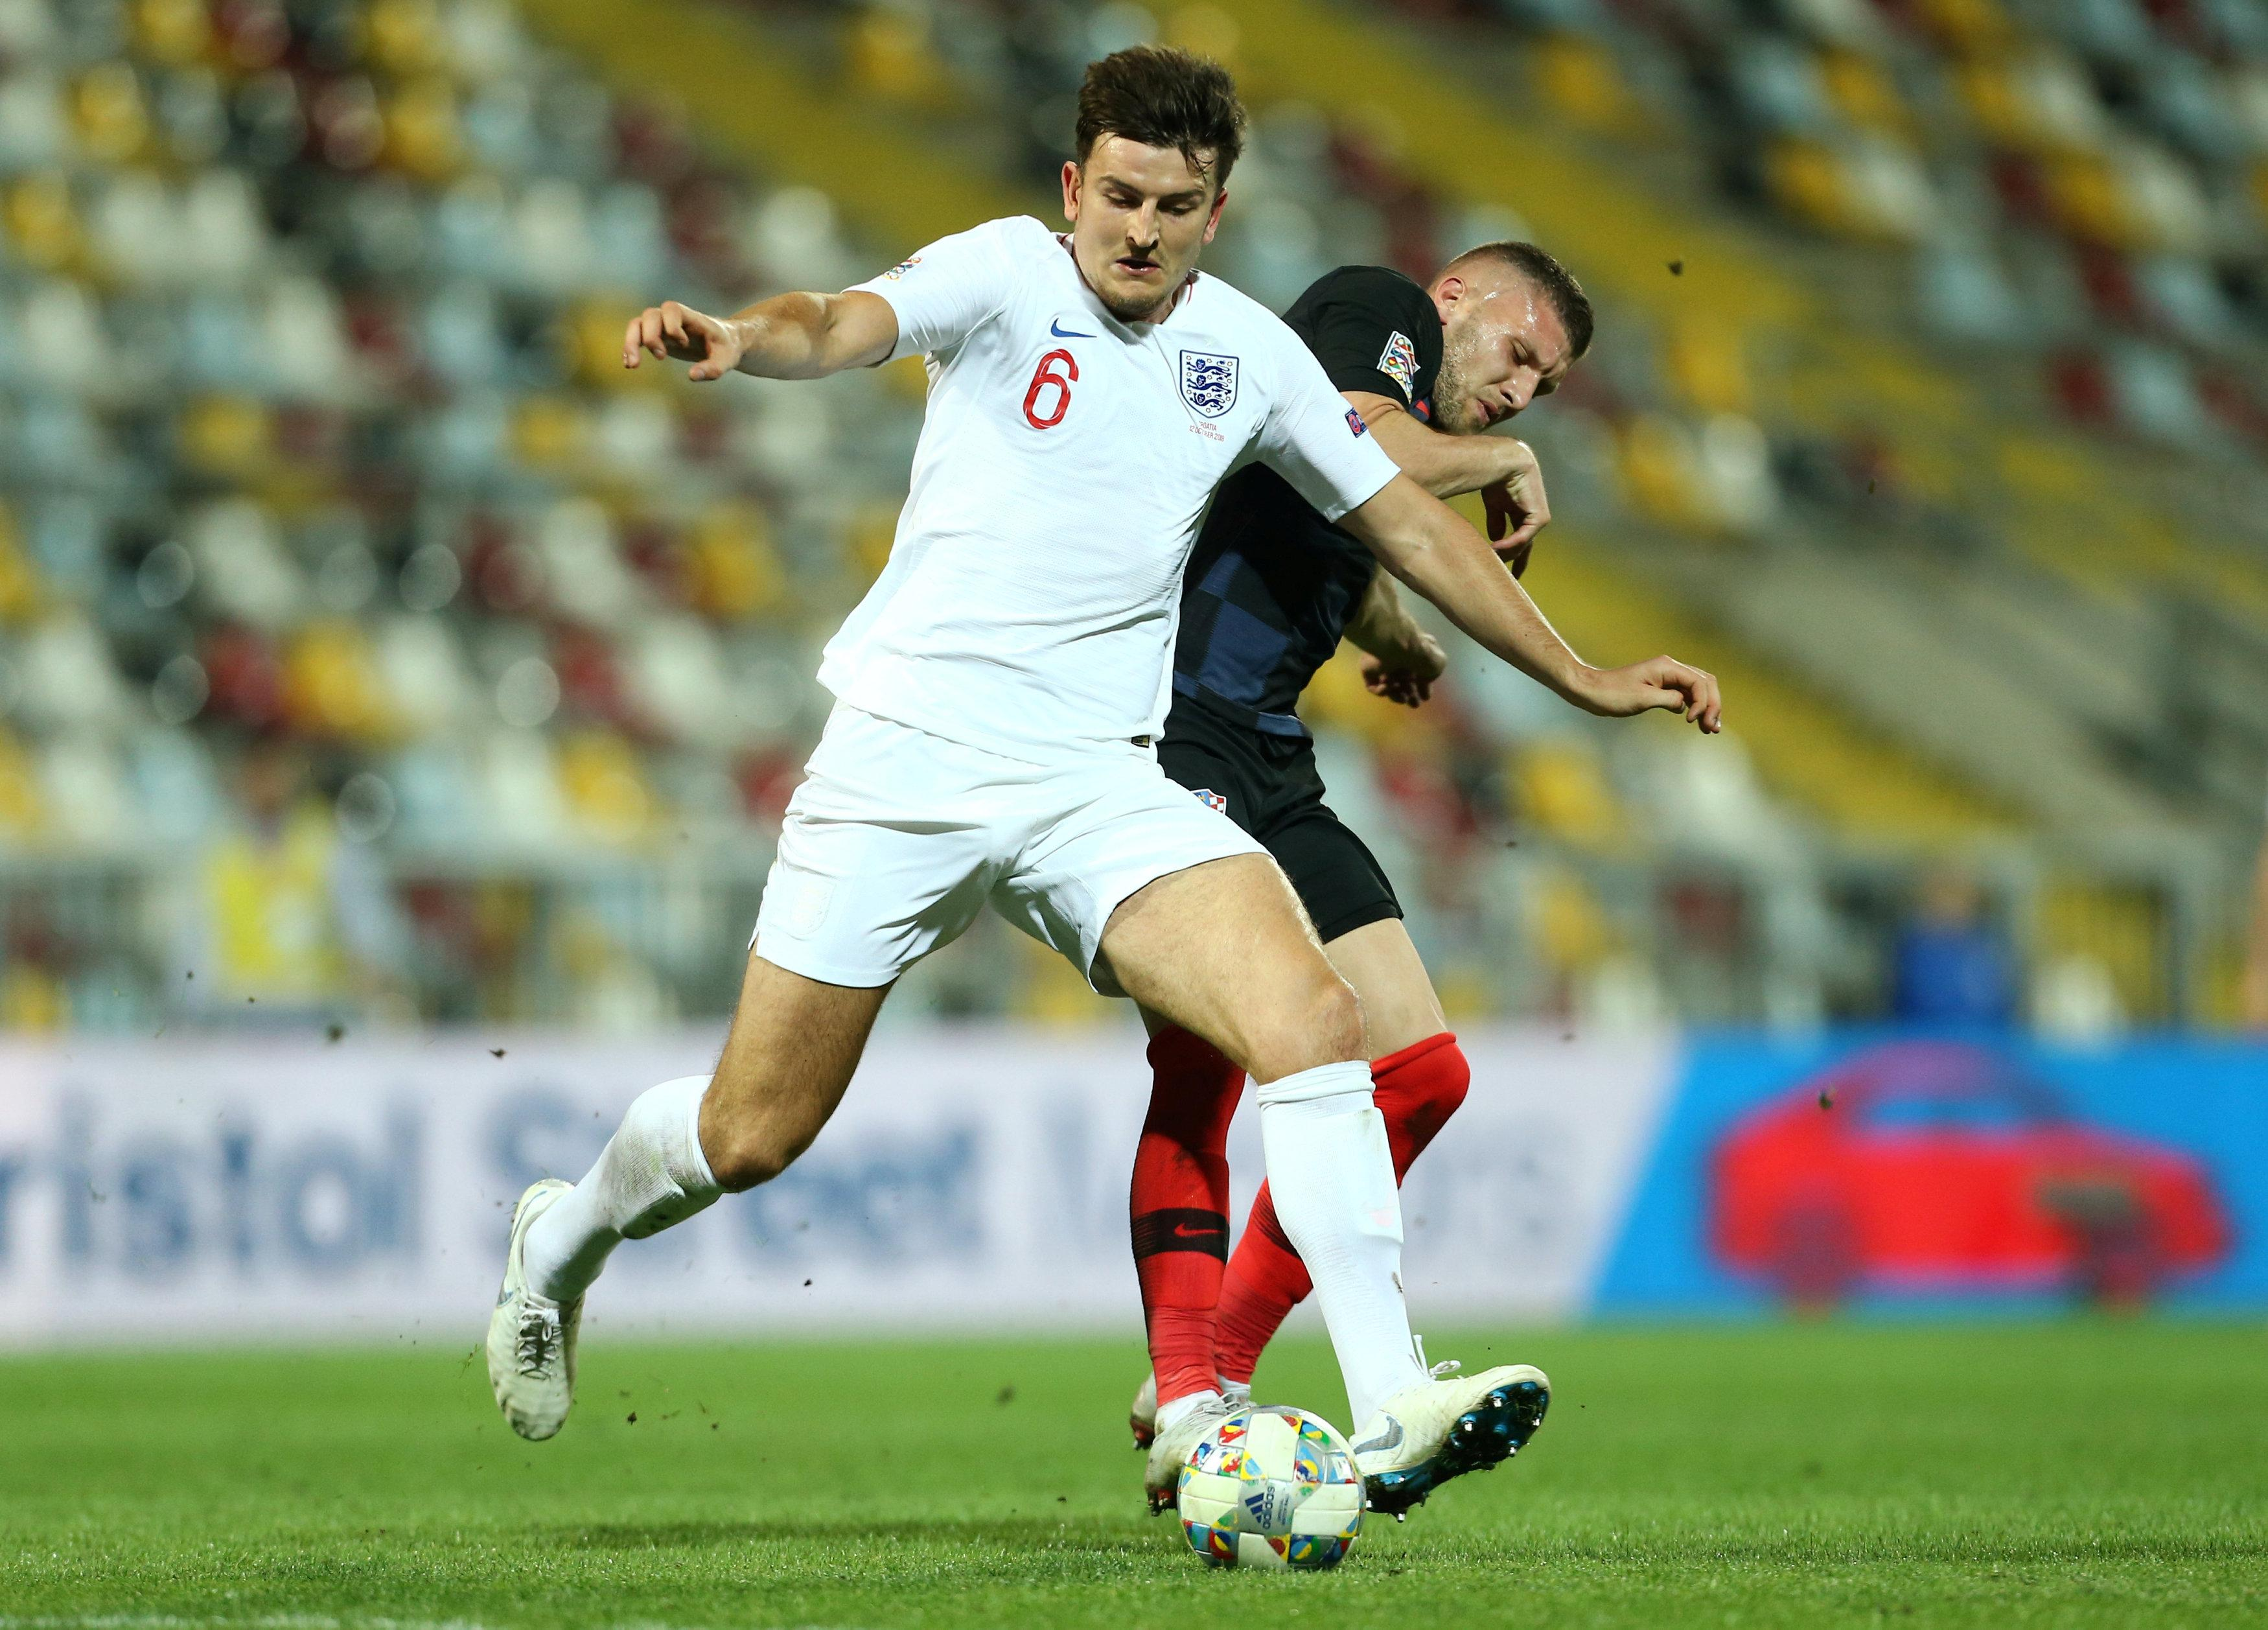 Harry Maguire was captured swearing by the cameras